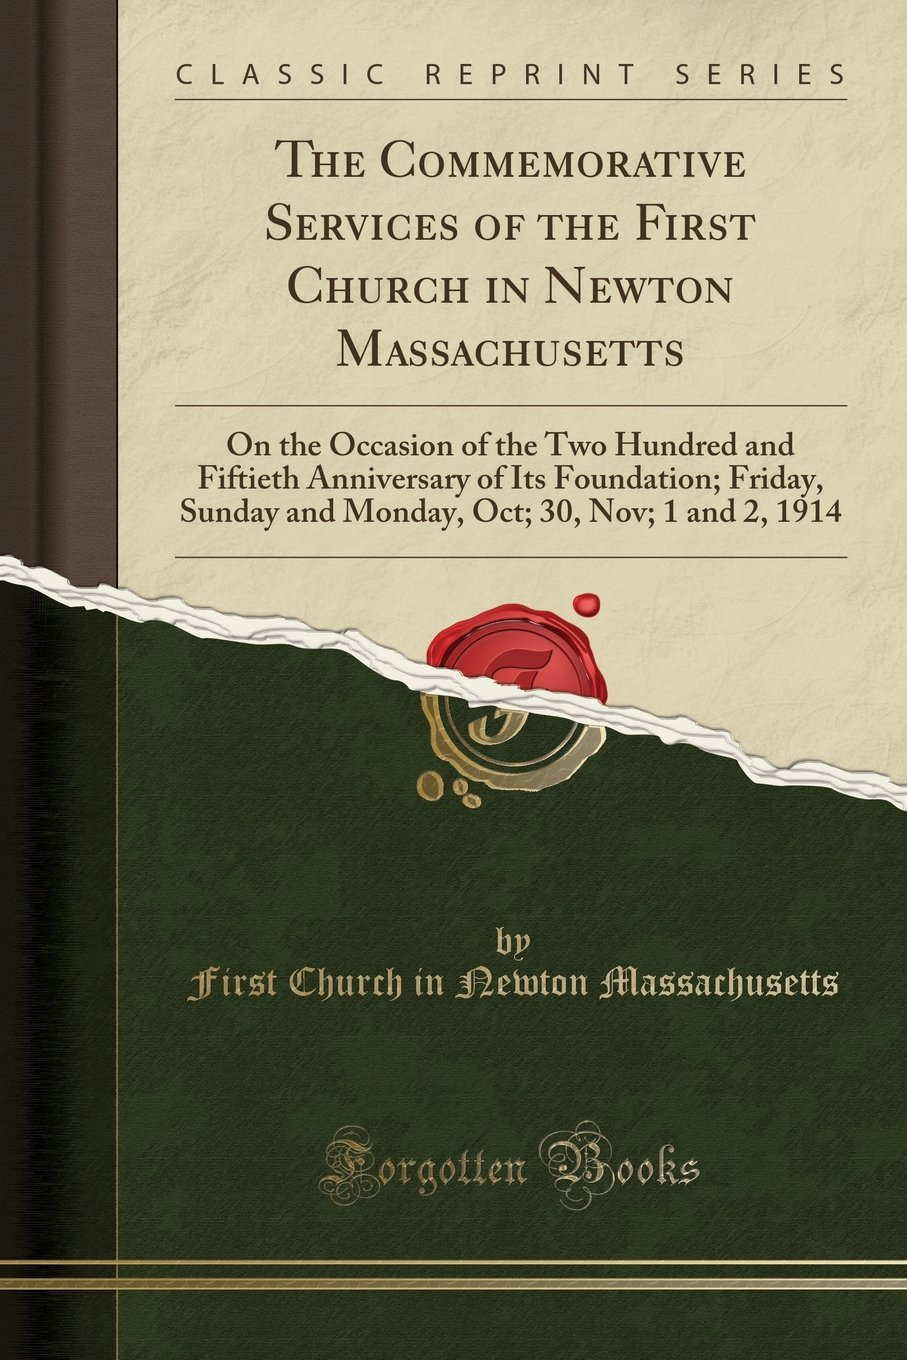 Read Online The Commemorative Services of the First Church in Newton Massachusetts: On the Occasion of the Two Hundred and Fiftieth Anniversary of Its Foundation; ... Oct; 30, Nov; 1 and 2, 1914 (Classic Reprint) ebook